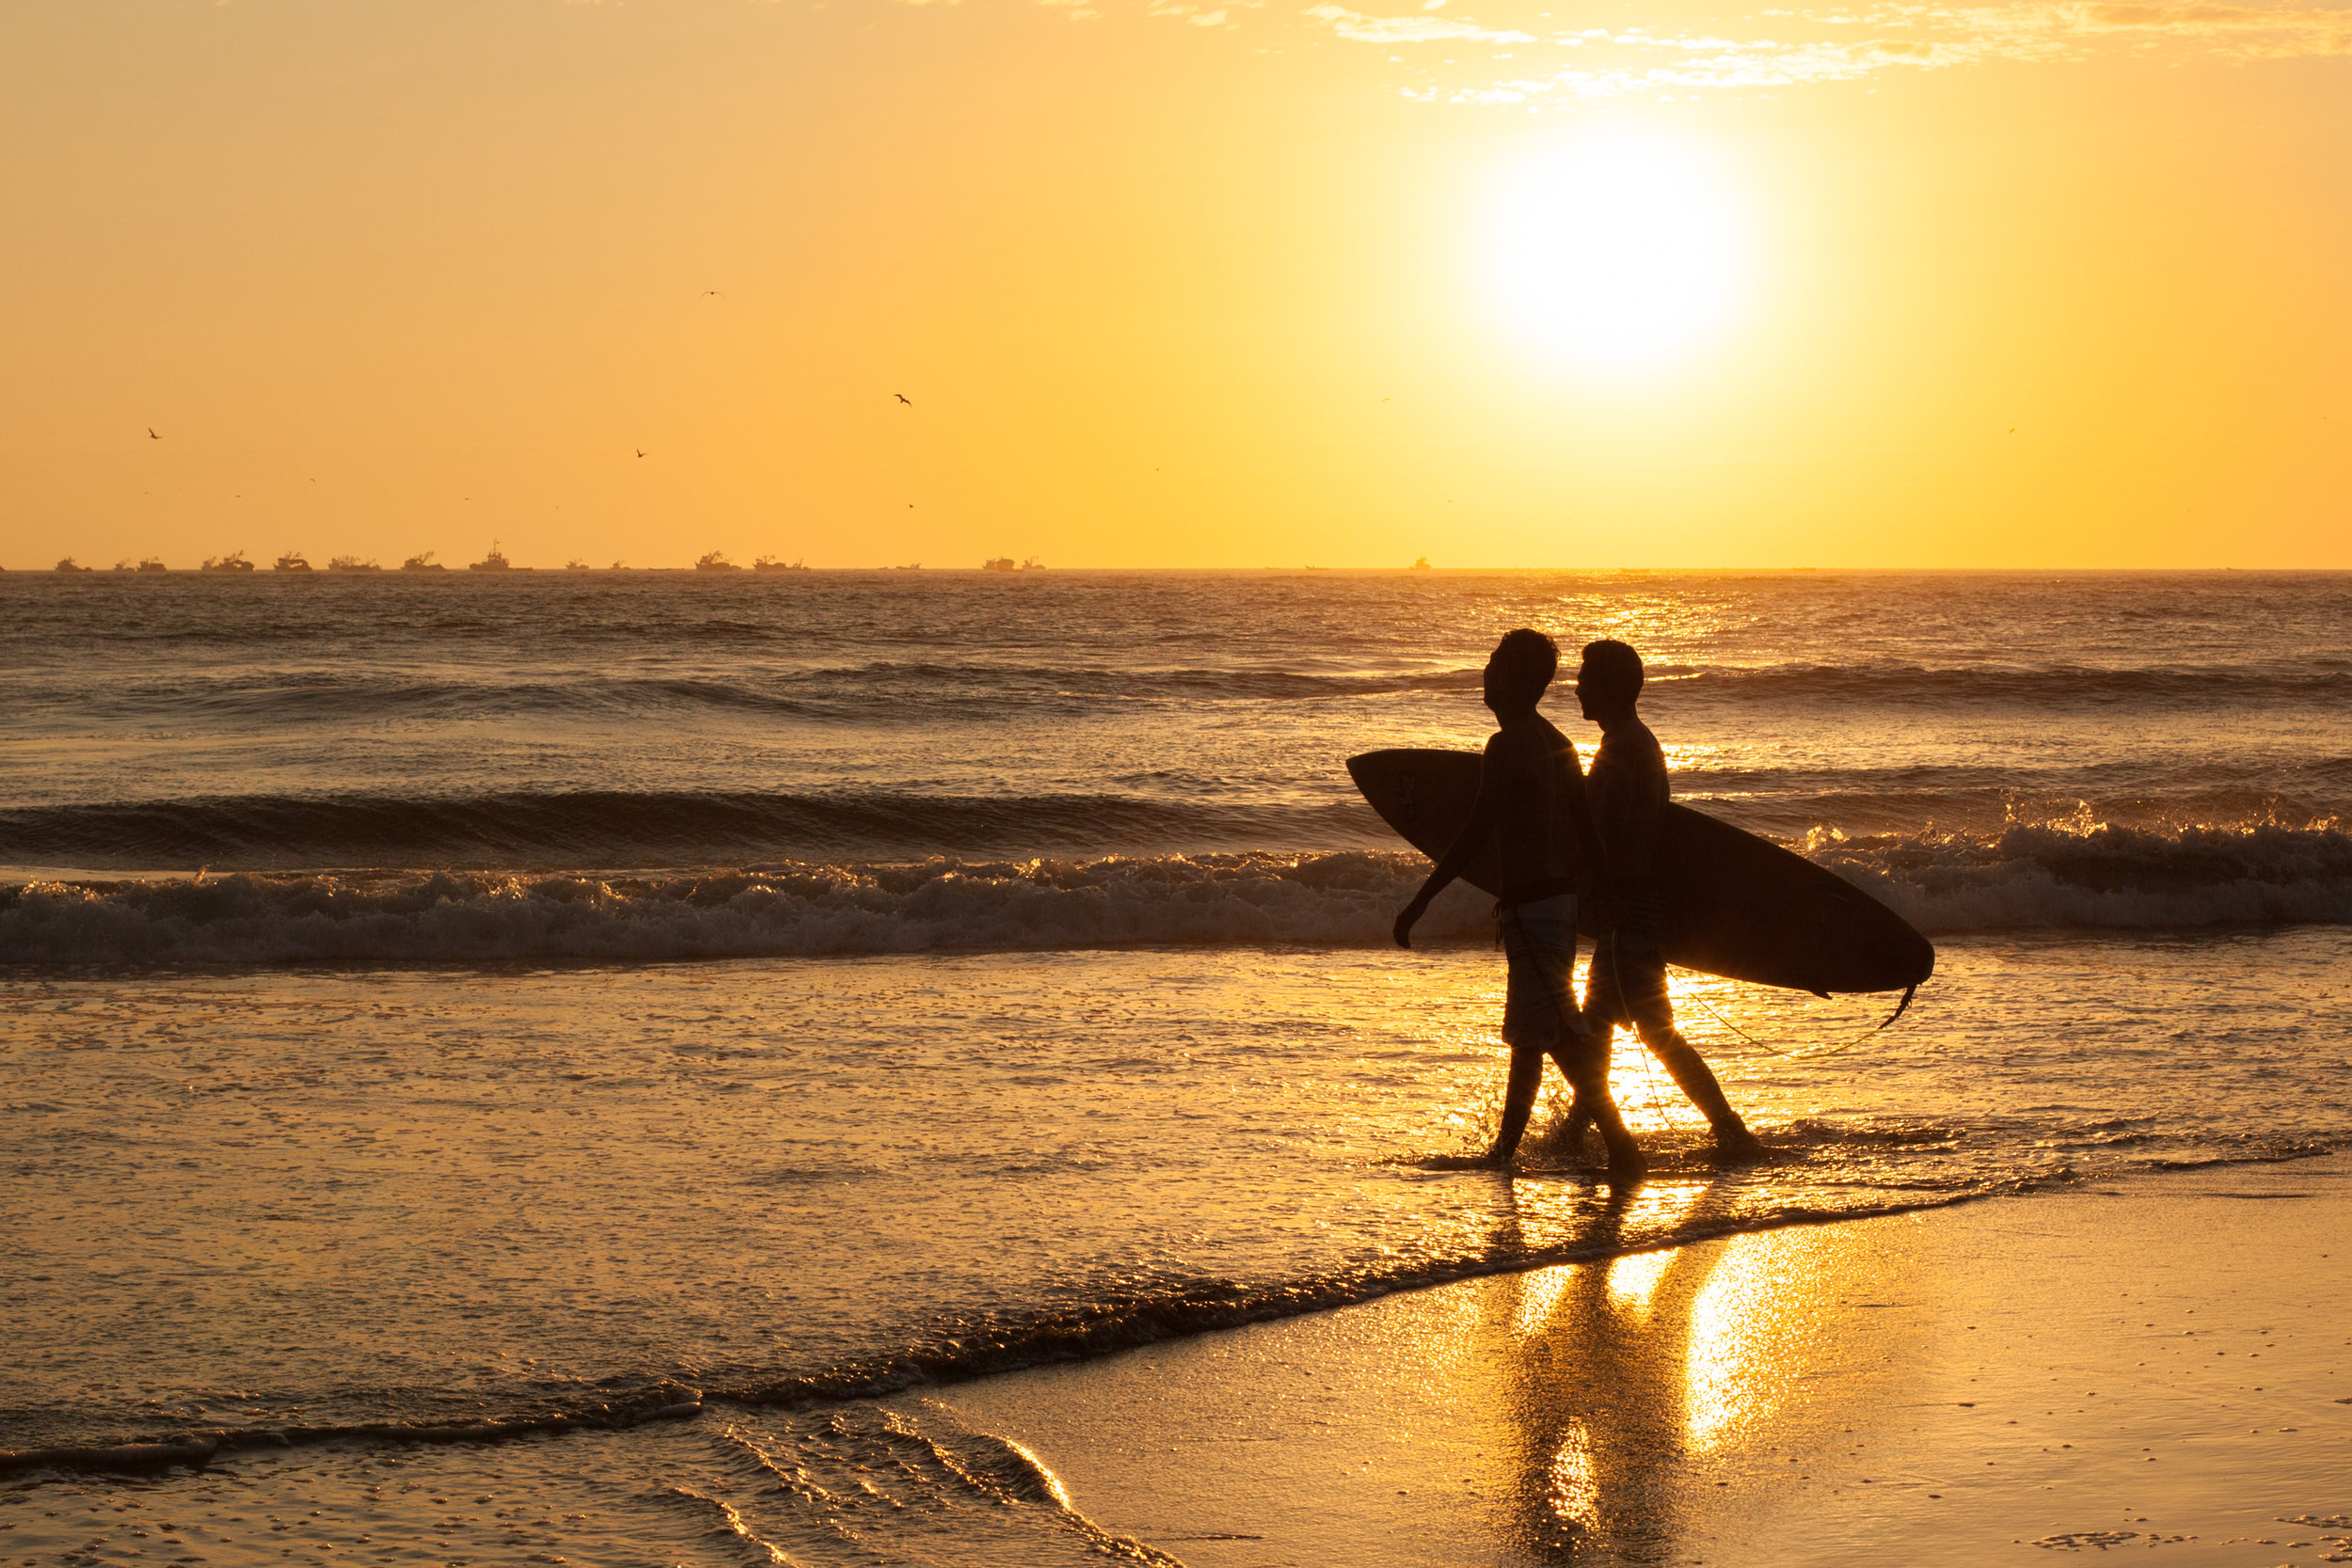 Silhouette photography by Geraint Rowland, two surfers at sunset in Peru